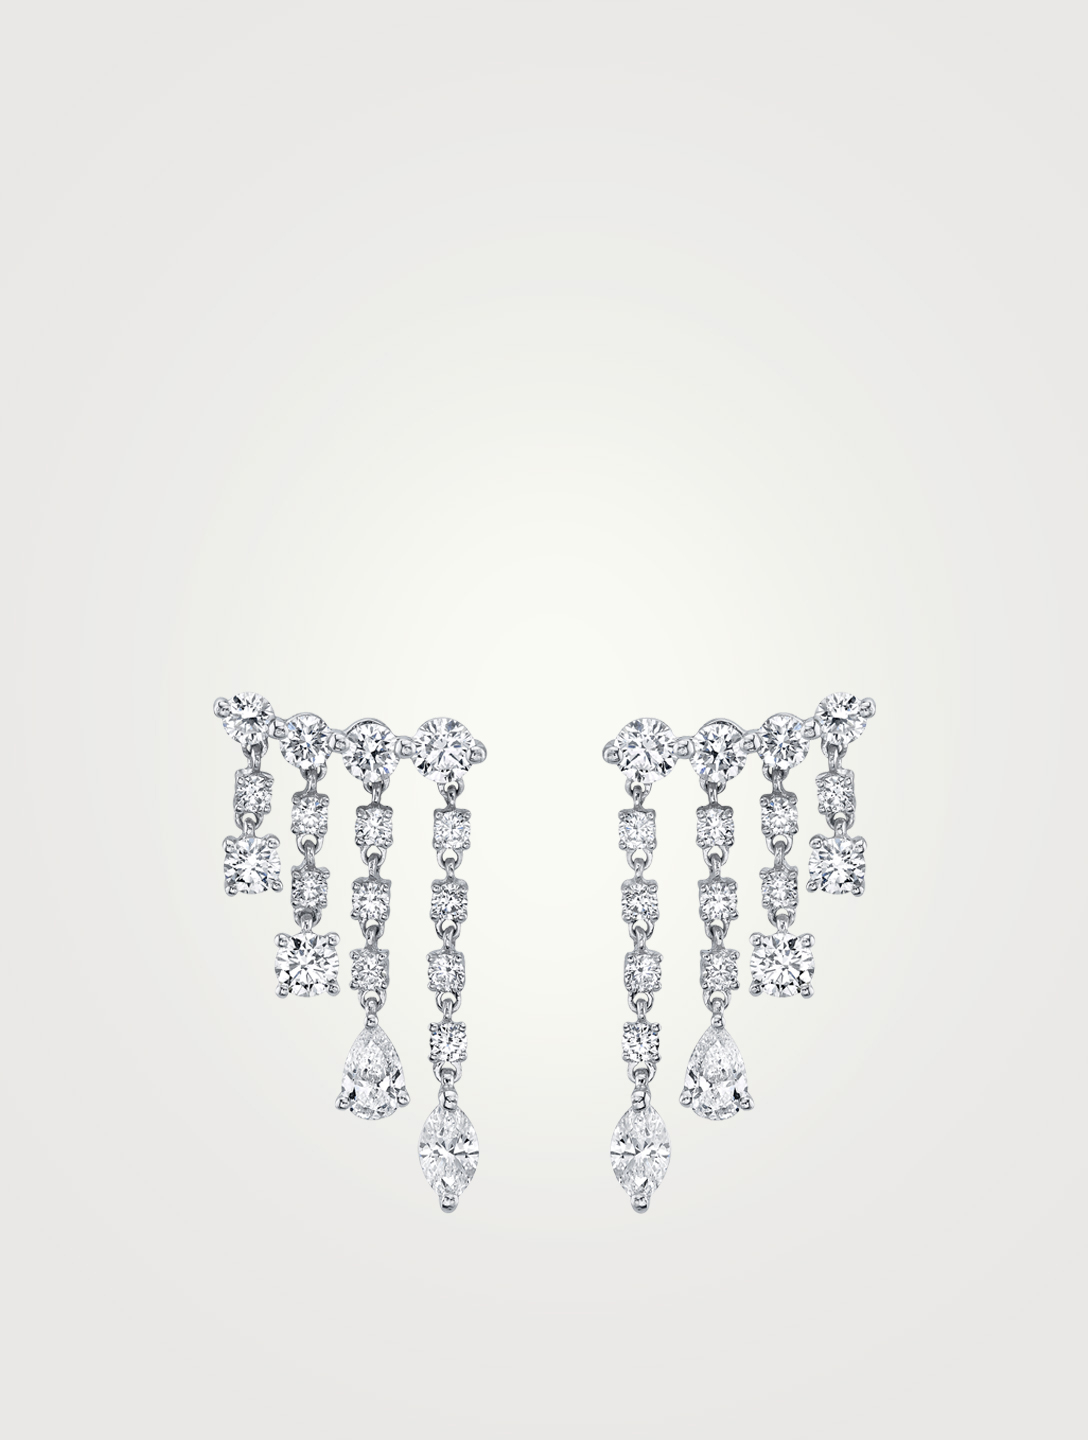 ANITA KO Petits pendants d'oreilles Rain en or blanc 18 ct sertis de diamants Femmes Metallique